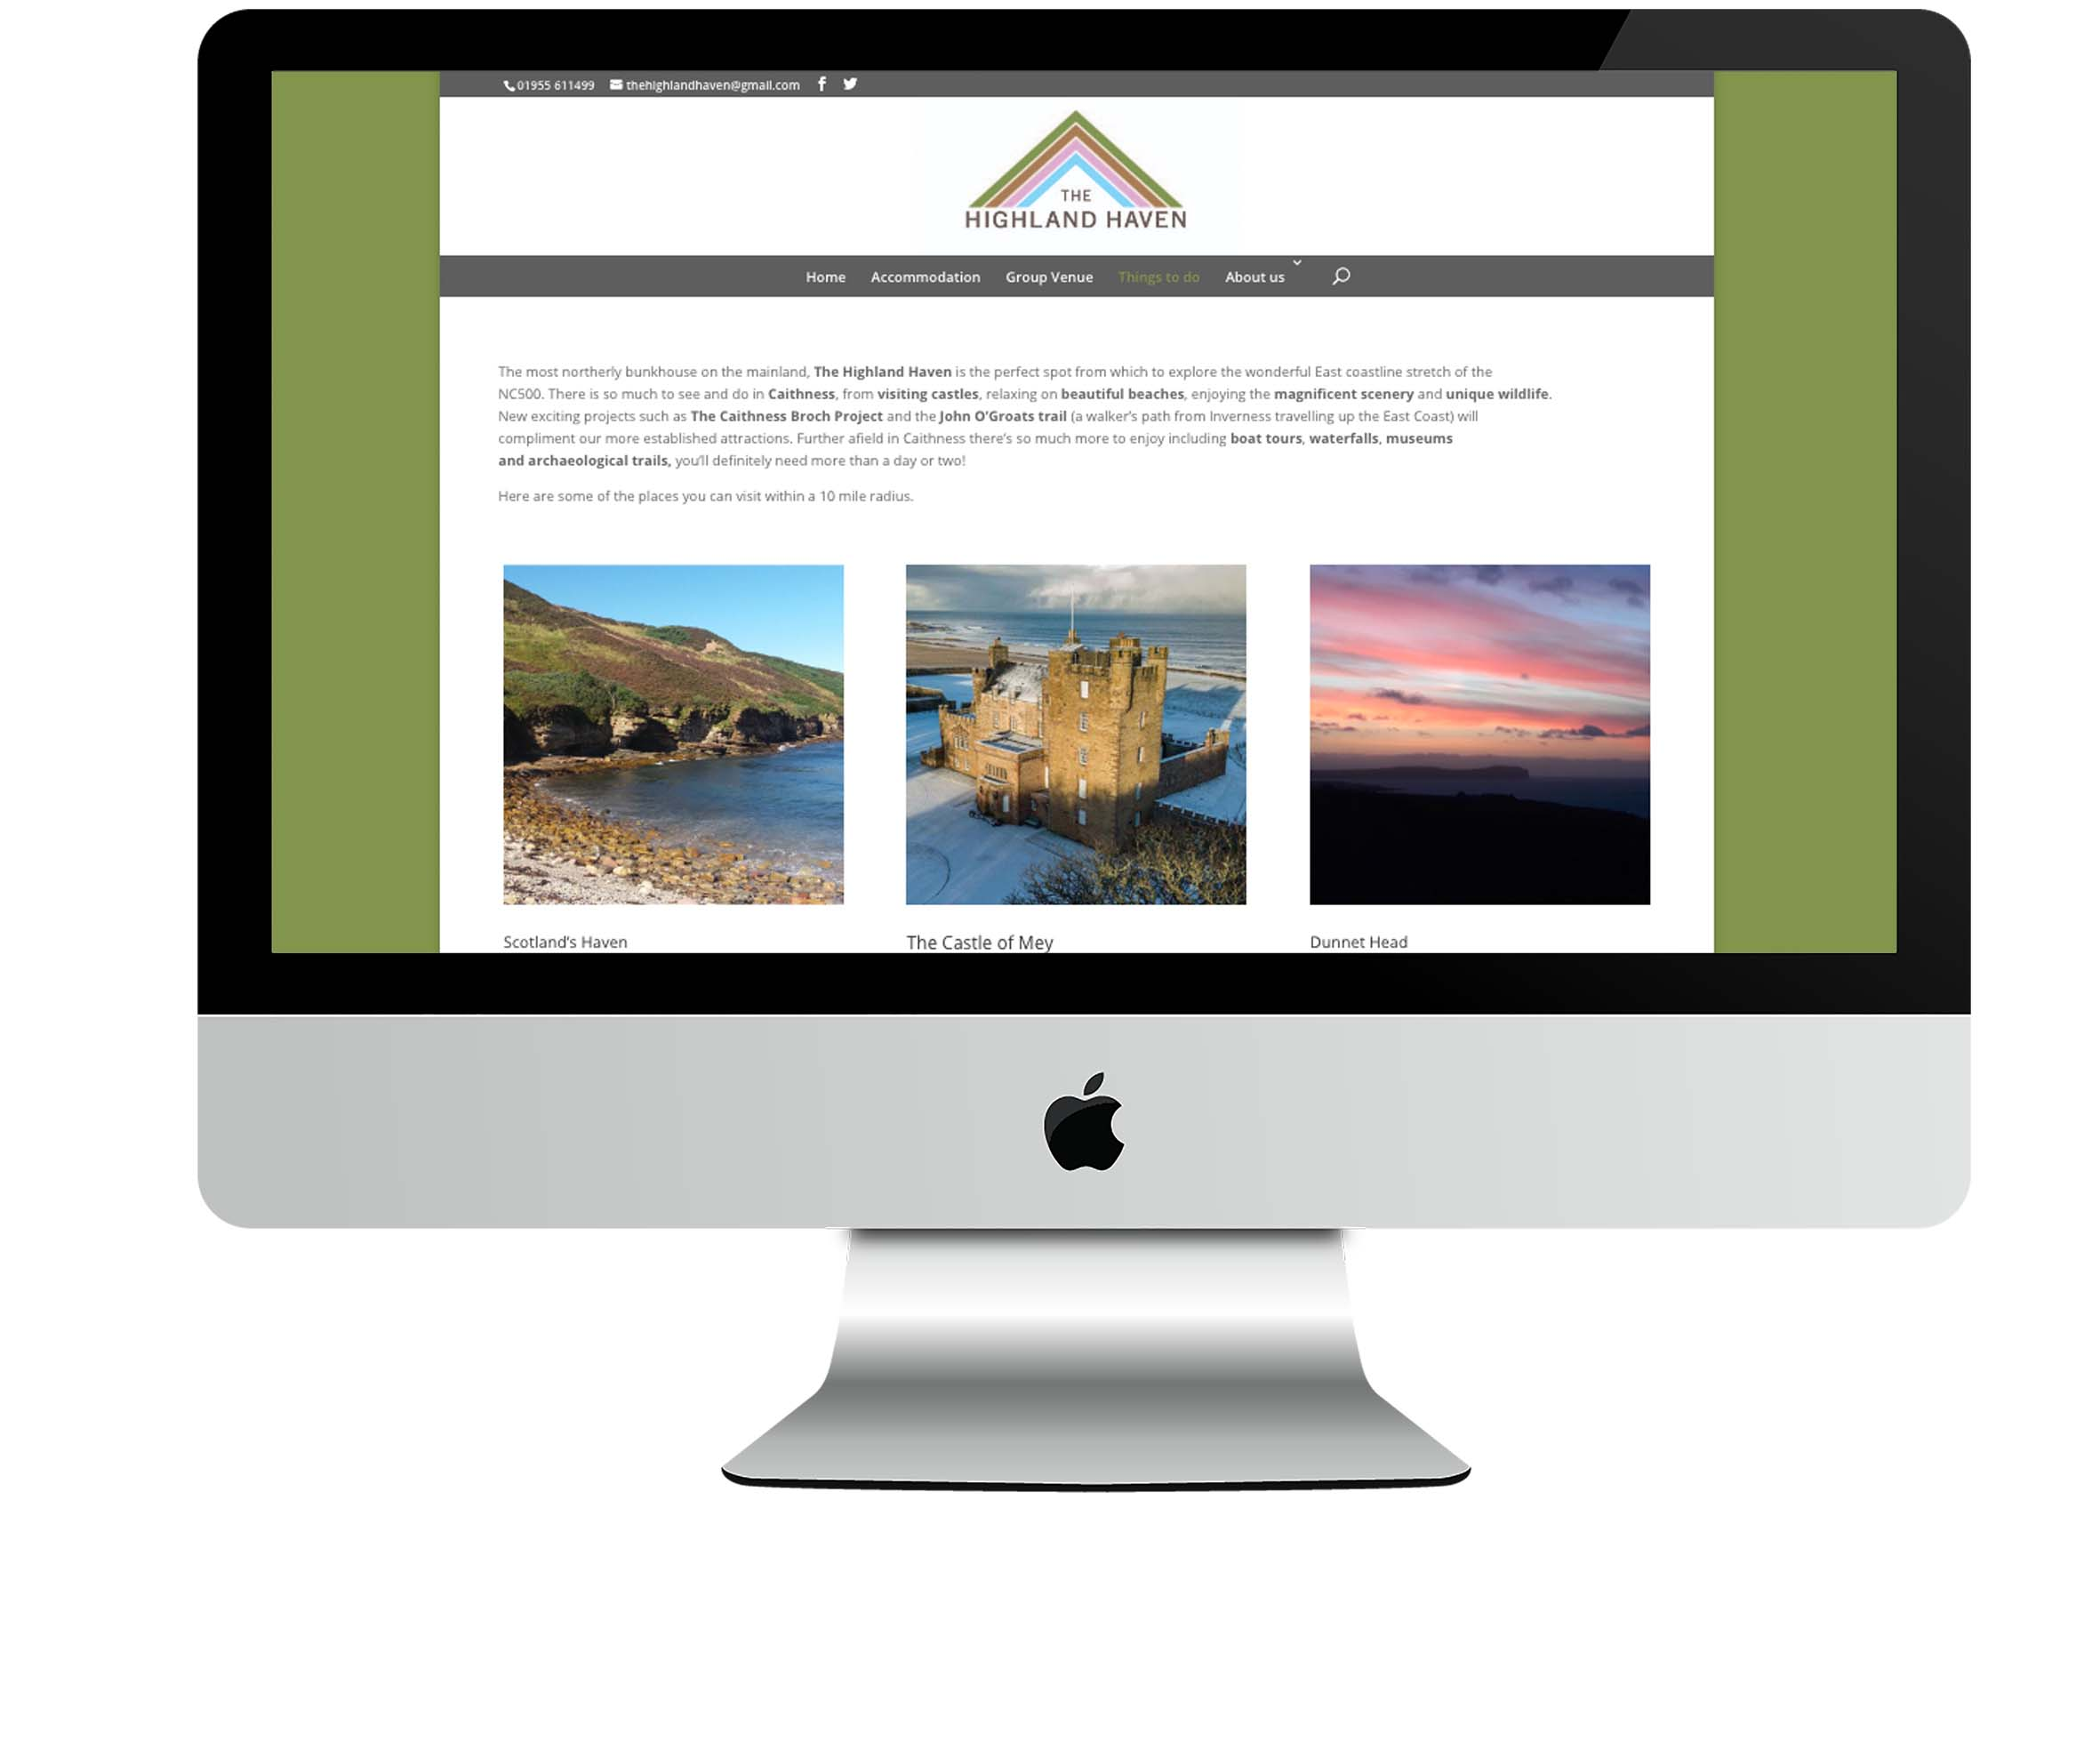 imac_website-sites